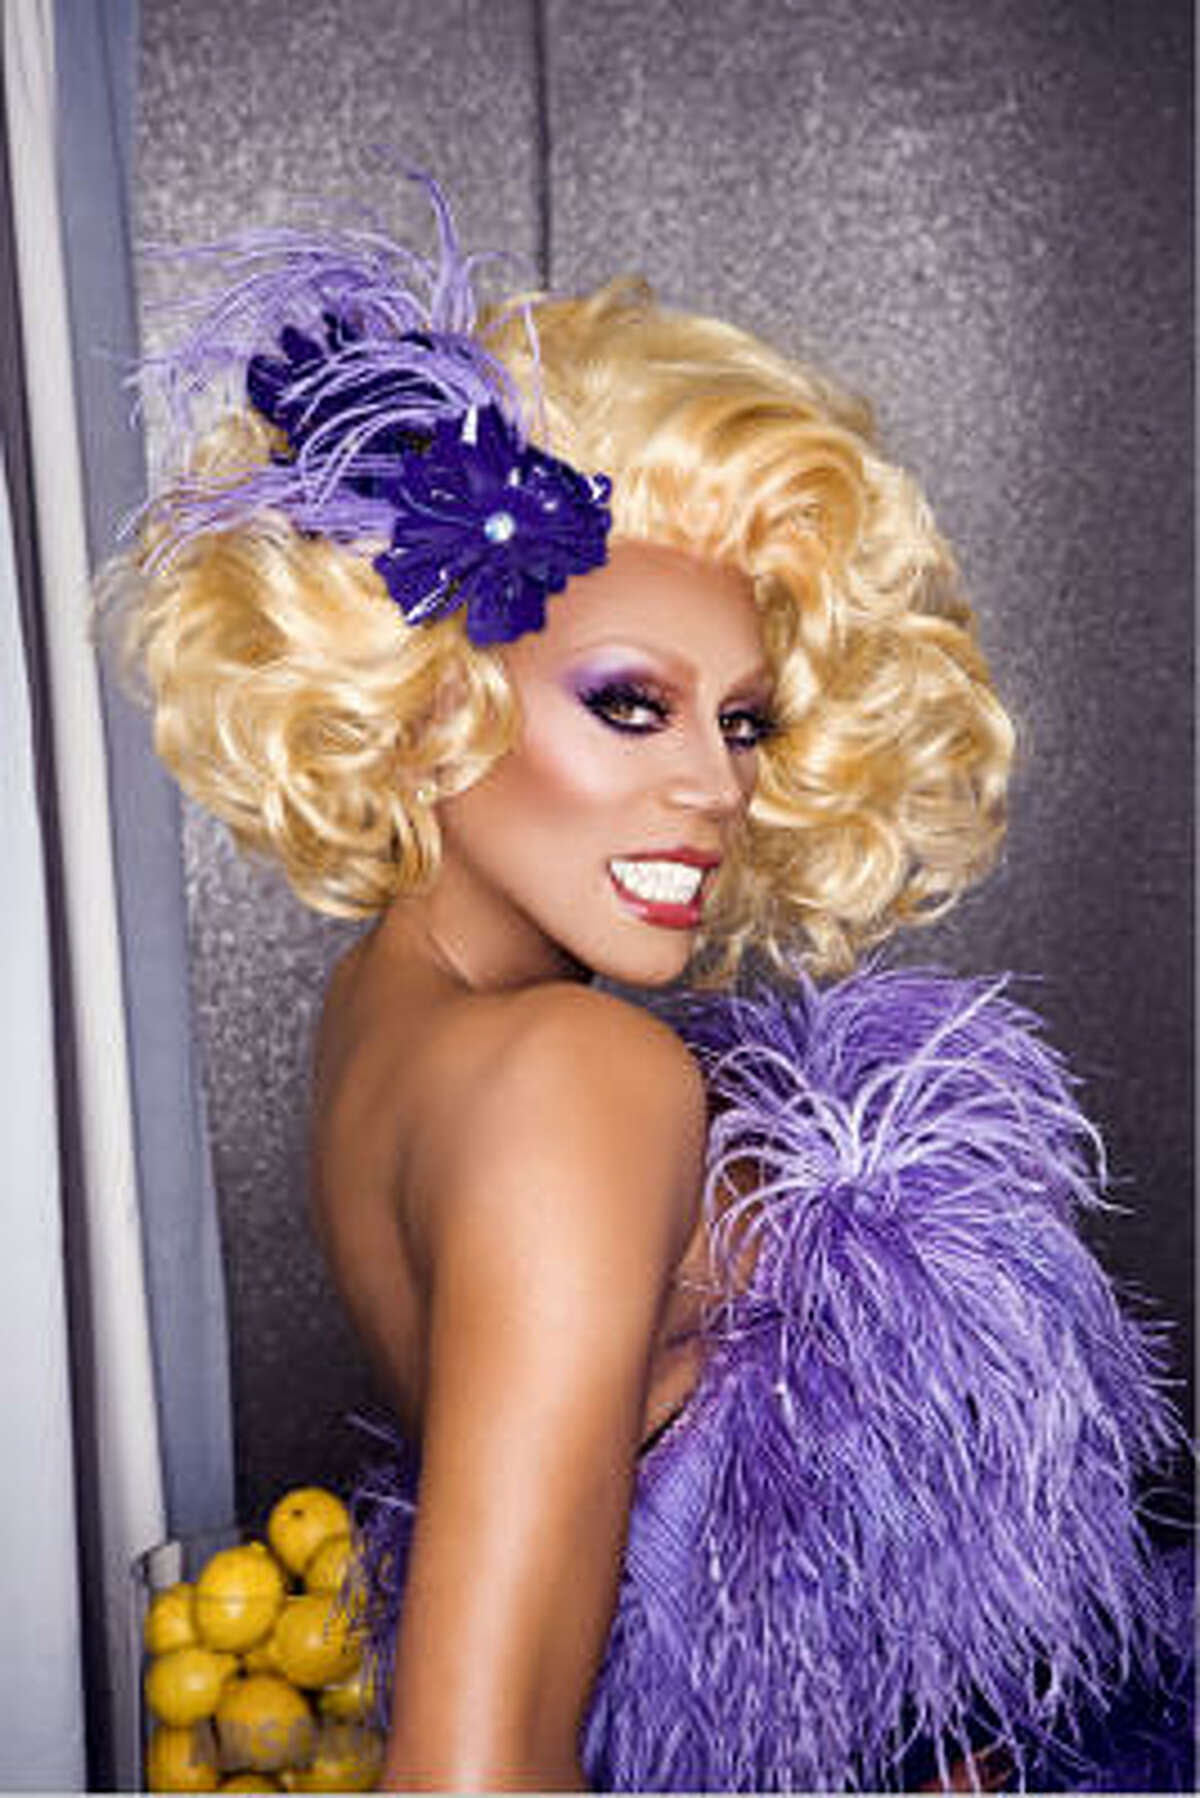 Celebrity drag queen RuPaul gets all dressed up for appearances and performances...